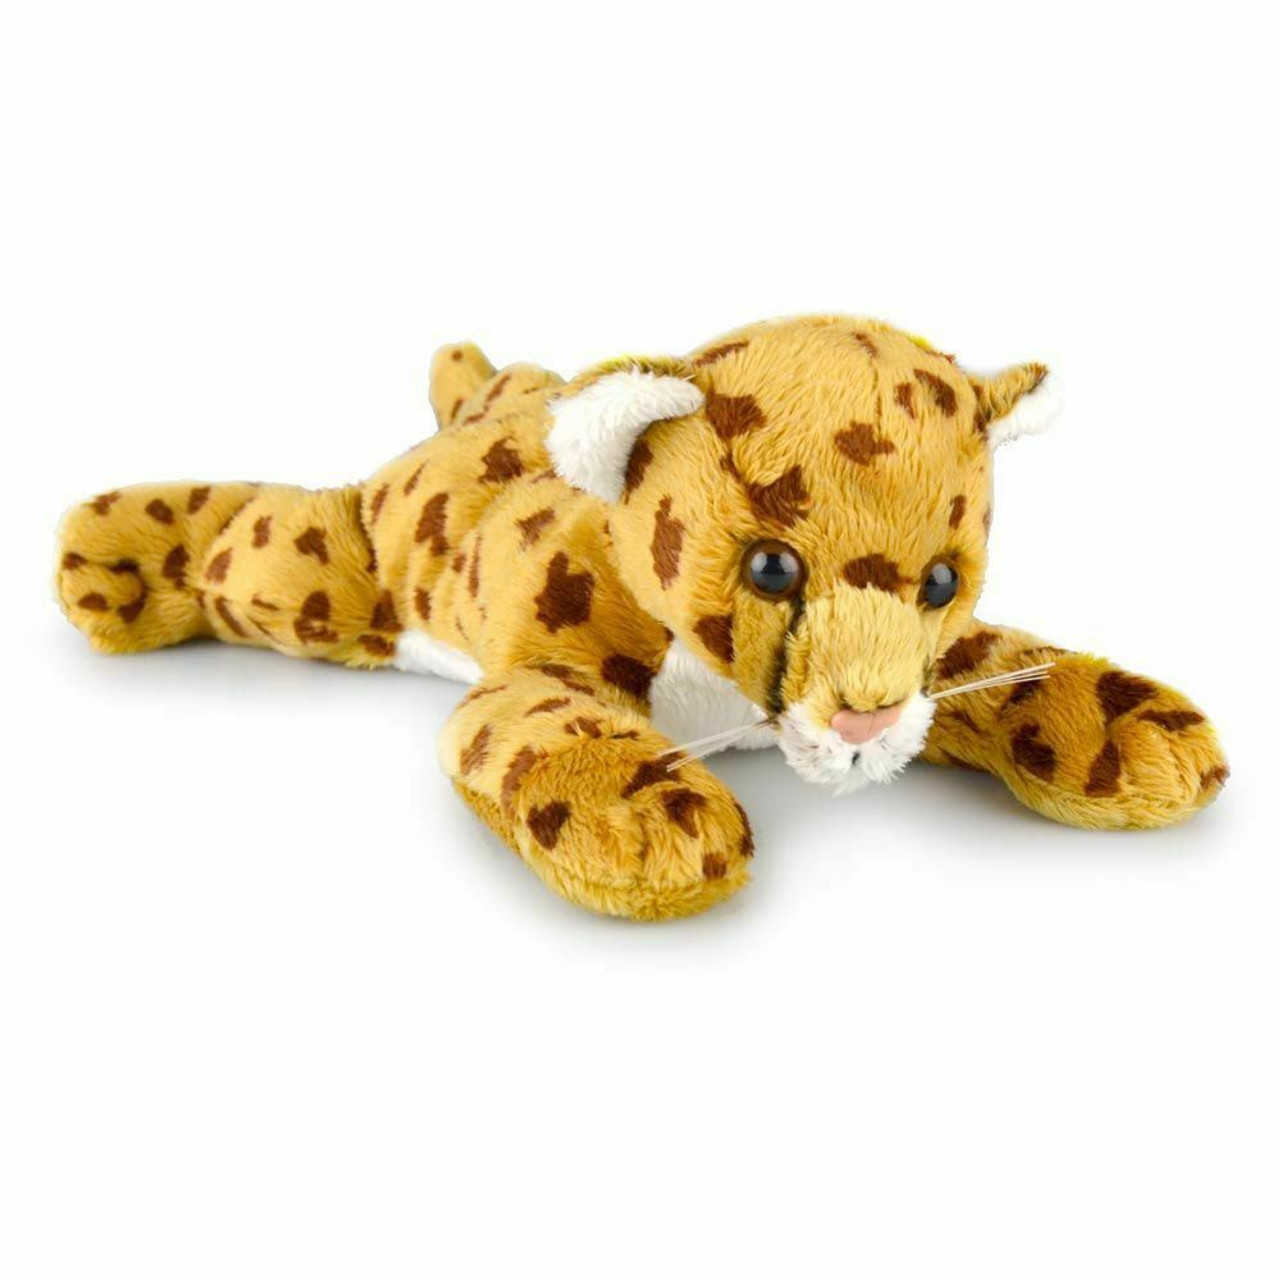 Korimco Cheetah Charlie Conga Cub 23cm at Baby Barn Discounts Korimco beautiful plush toy collection to your Animal Kingdom collection with soft silky texture that would get any kid addicted and crave for more hugs